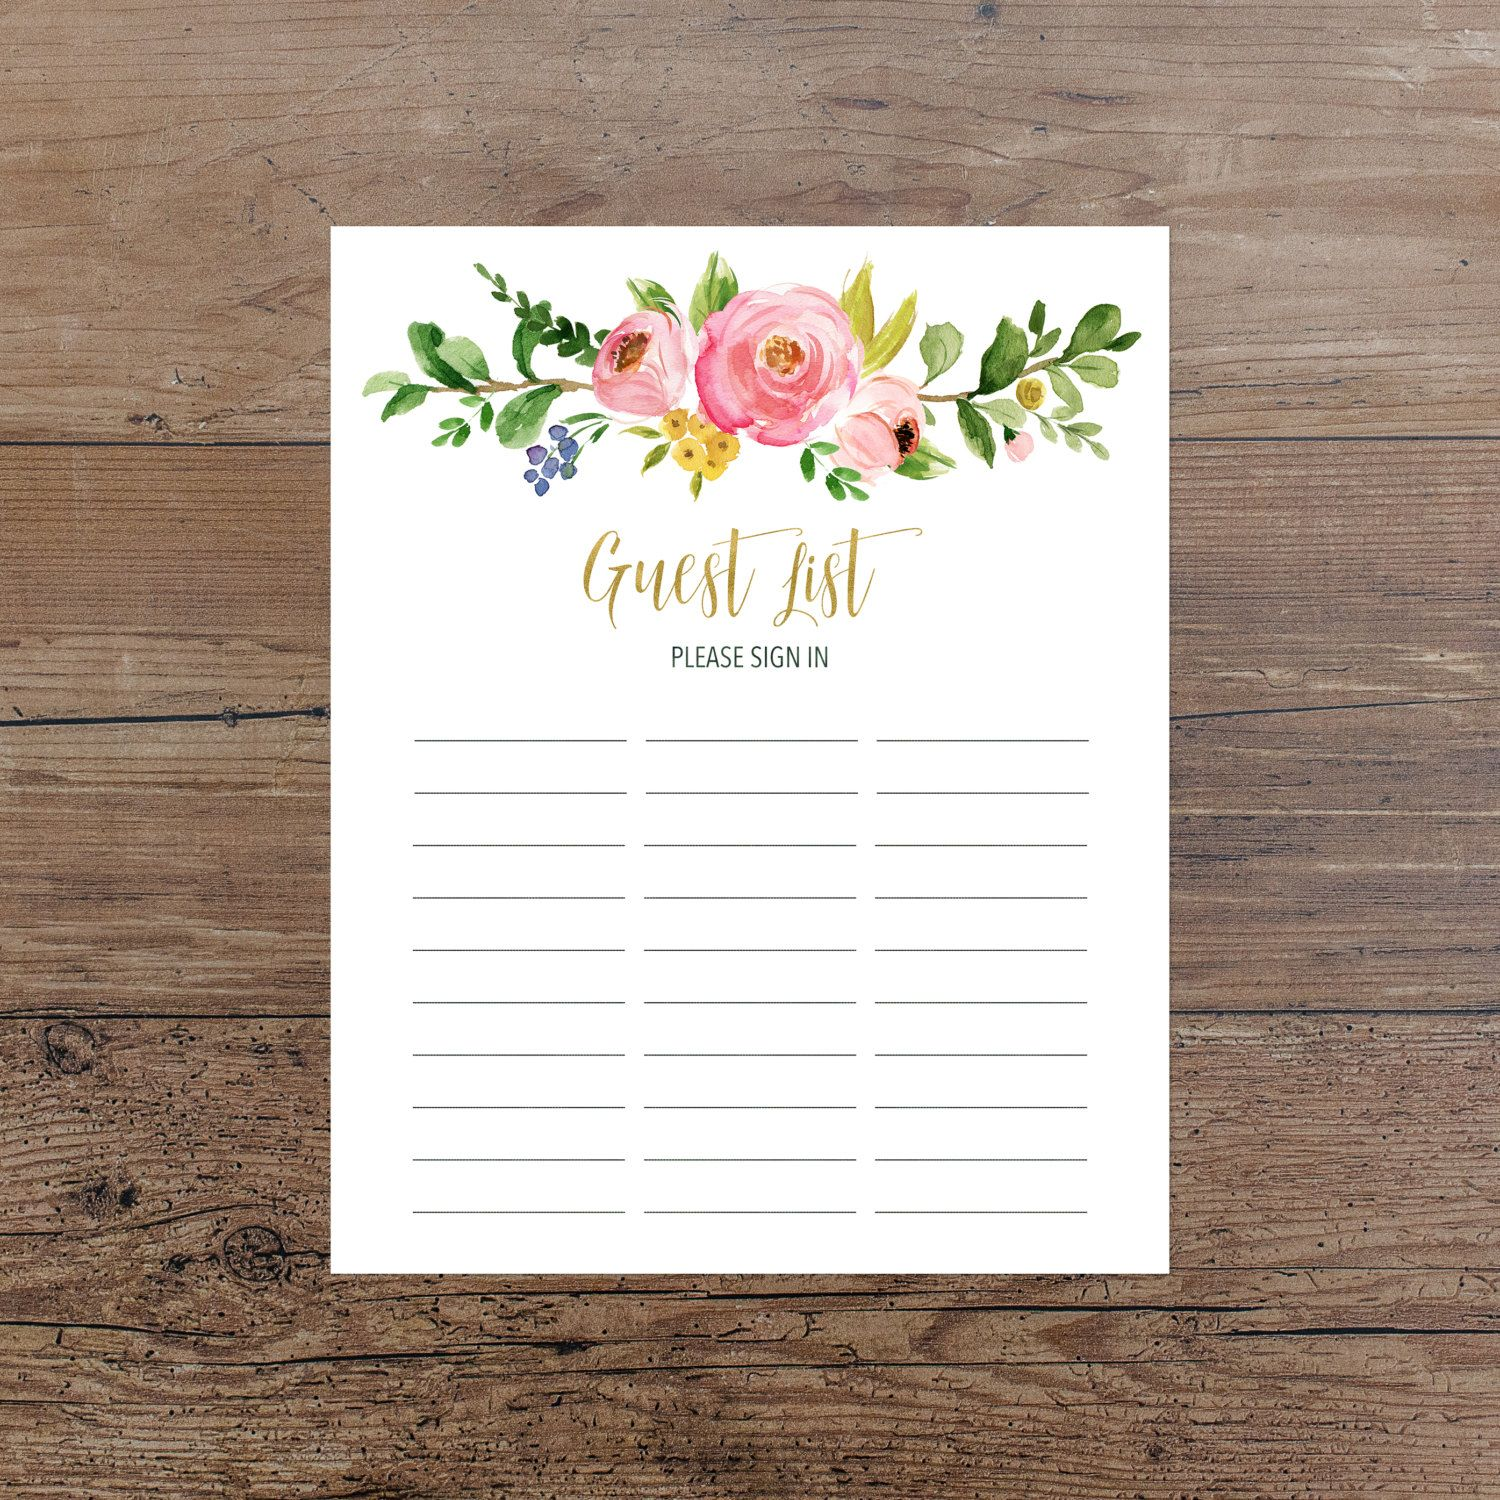 floral guest list printable guest list sign in sheet pink floral guest list baby shower game baby shower activity bridal shower game 233 by